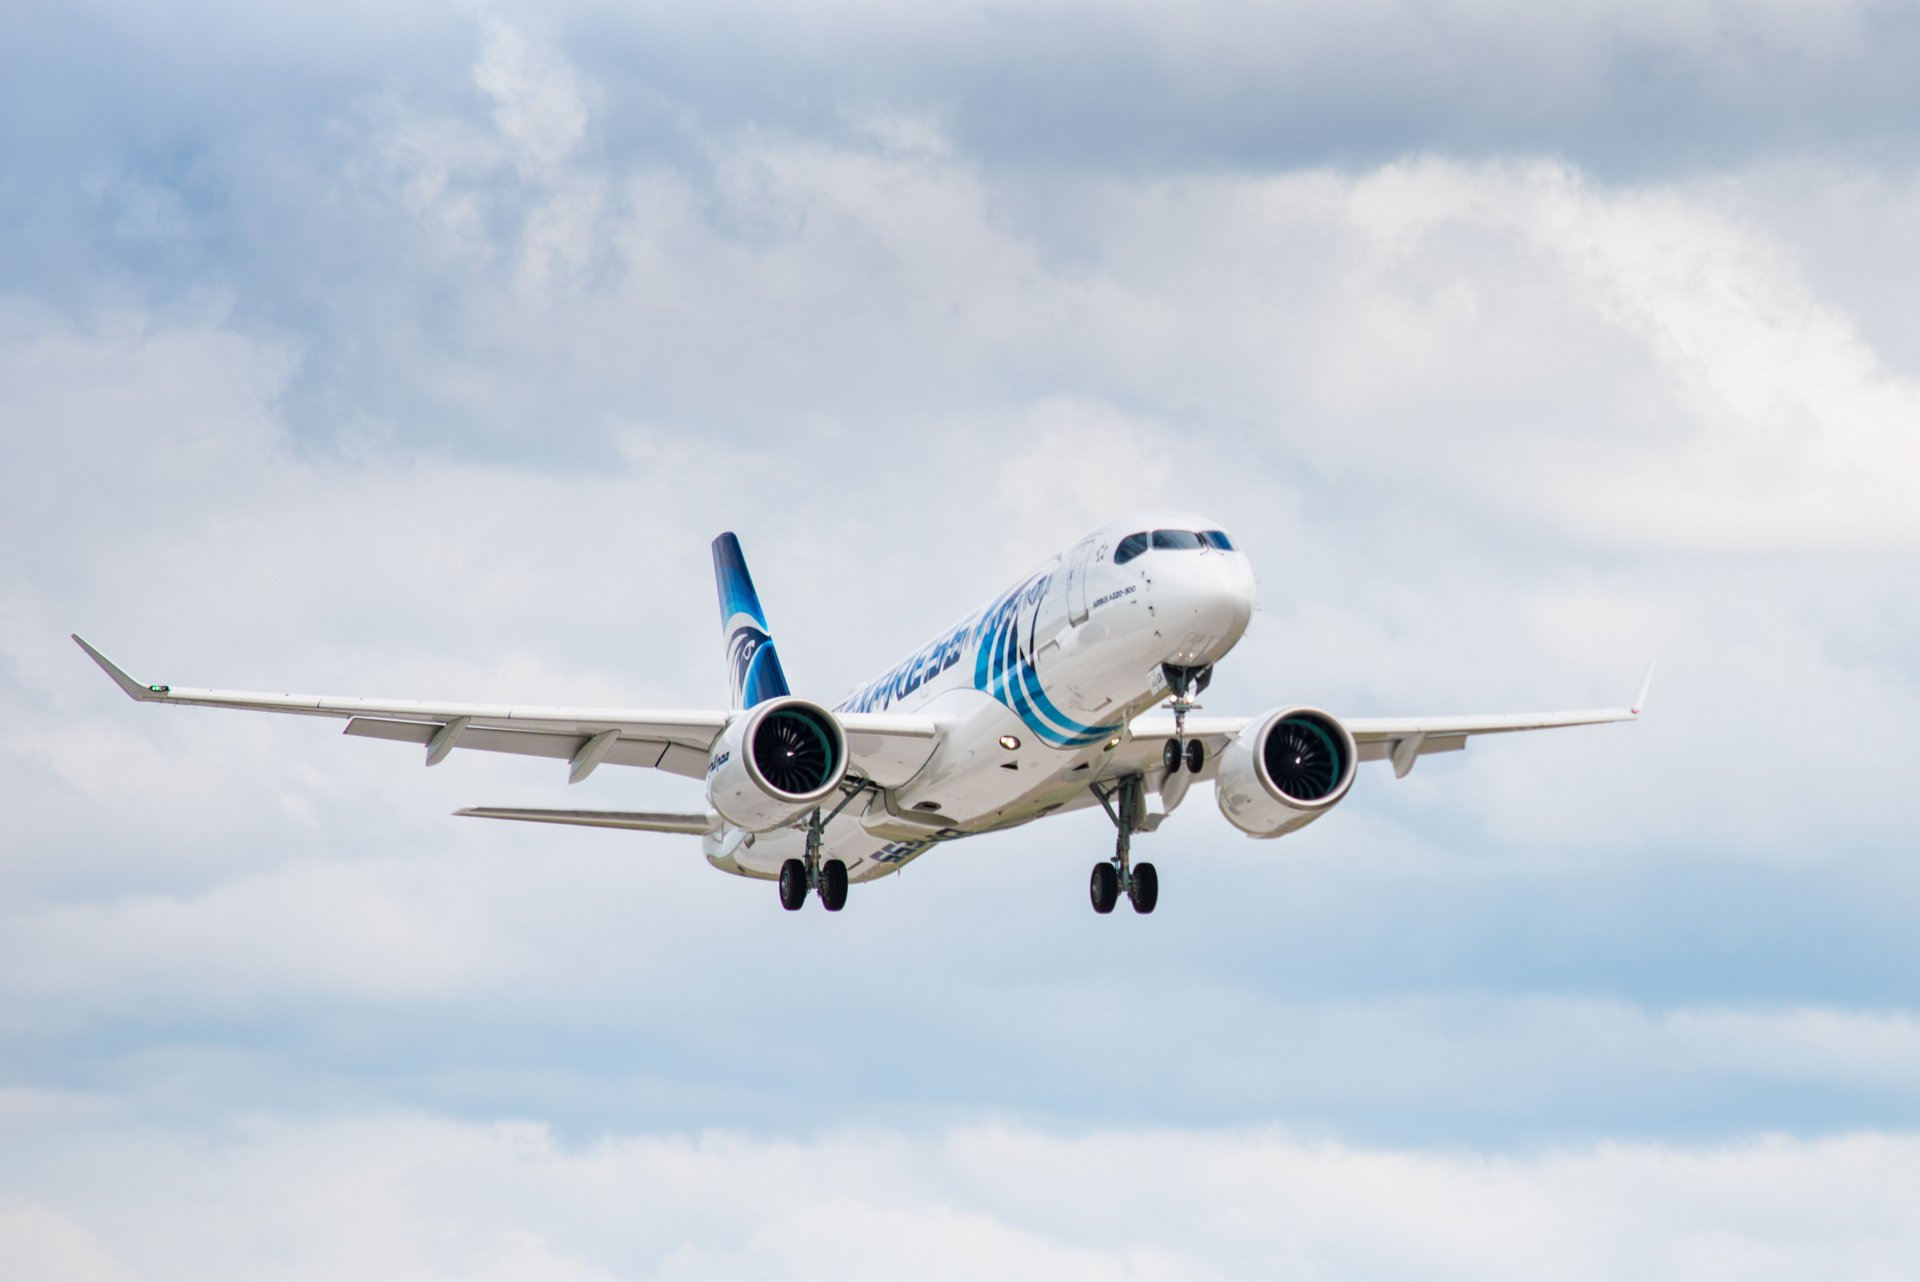 The initial A220-300 for EgyptAir performed its first test flight in August 2019 from the Mirabel assembly line in Quebec, Canada